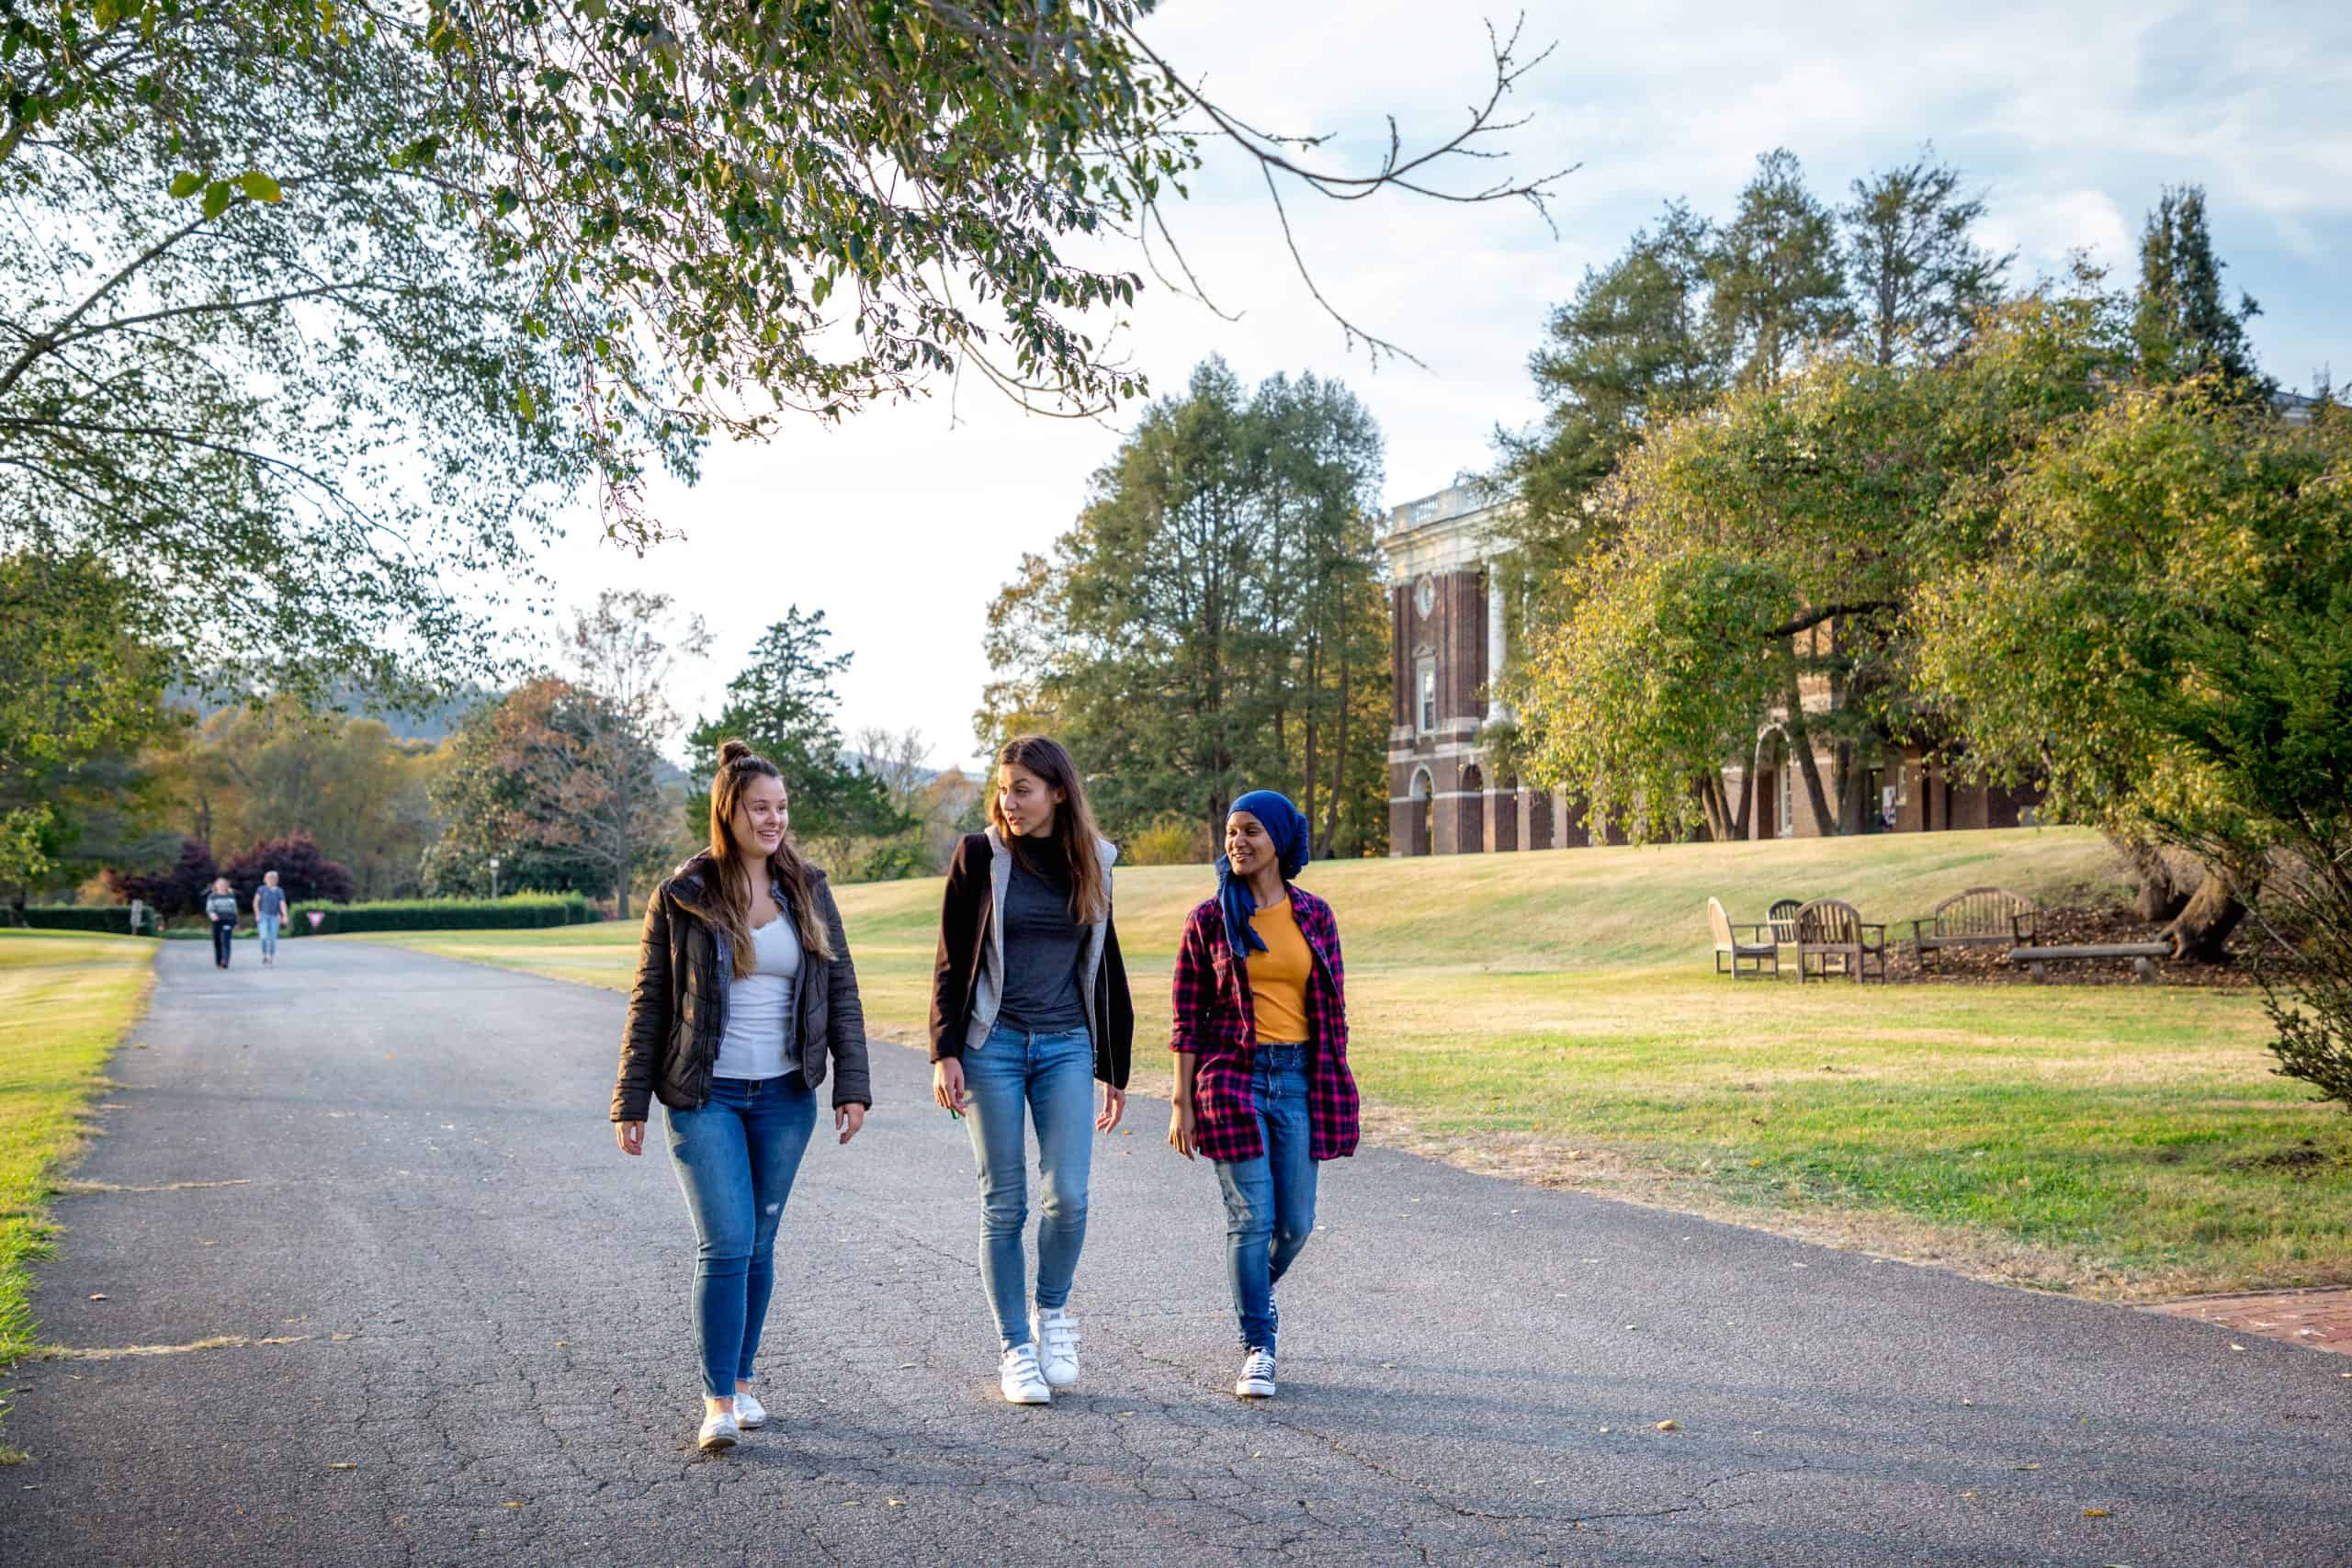 Three female students walk down a road with a building in the background